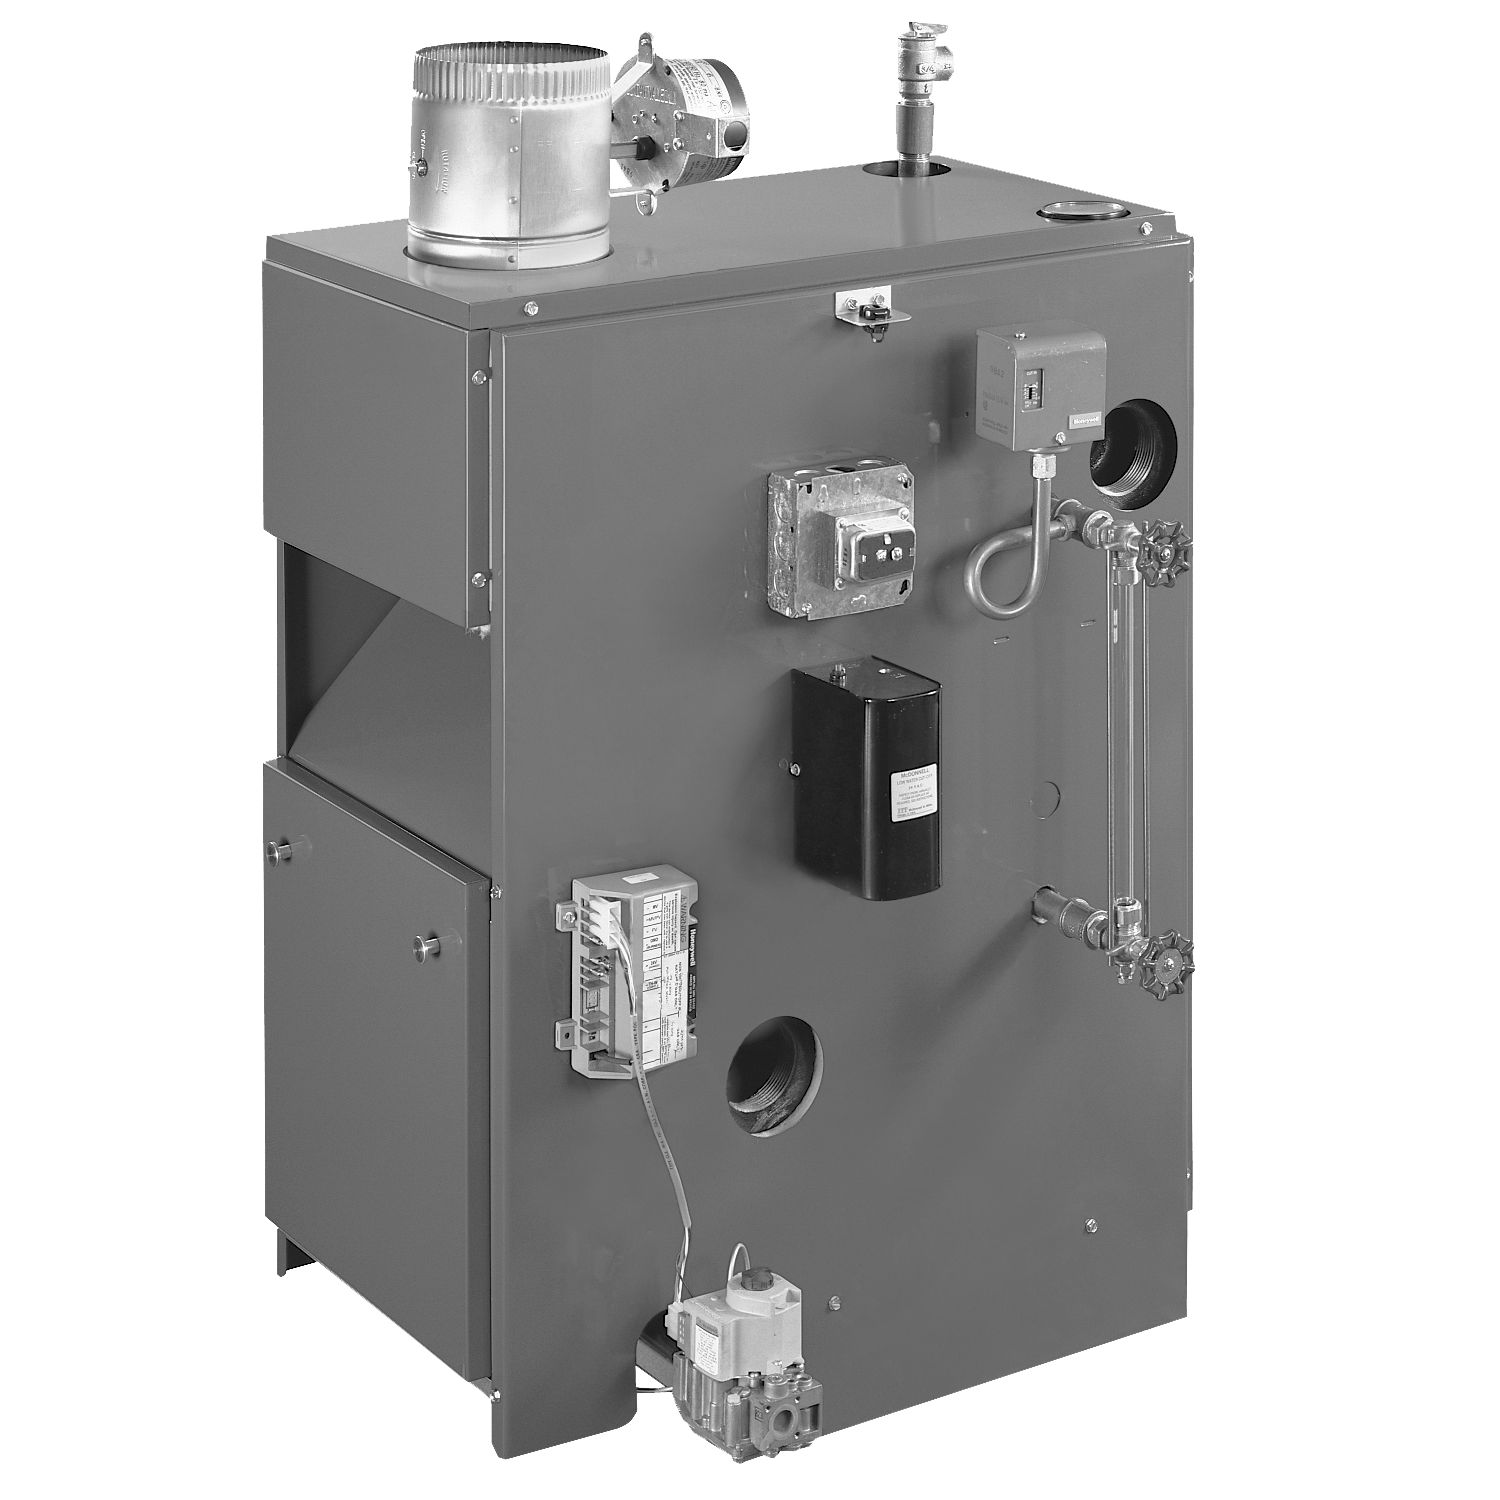 80% AFUE 187000 Btuh Gas-Fired Steam Boiler